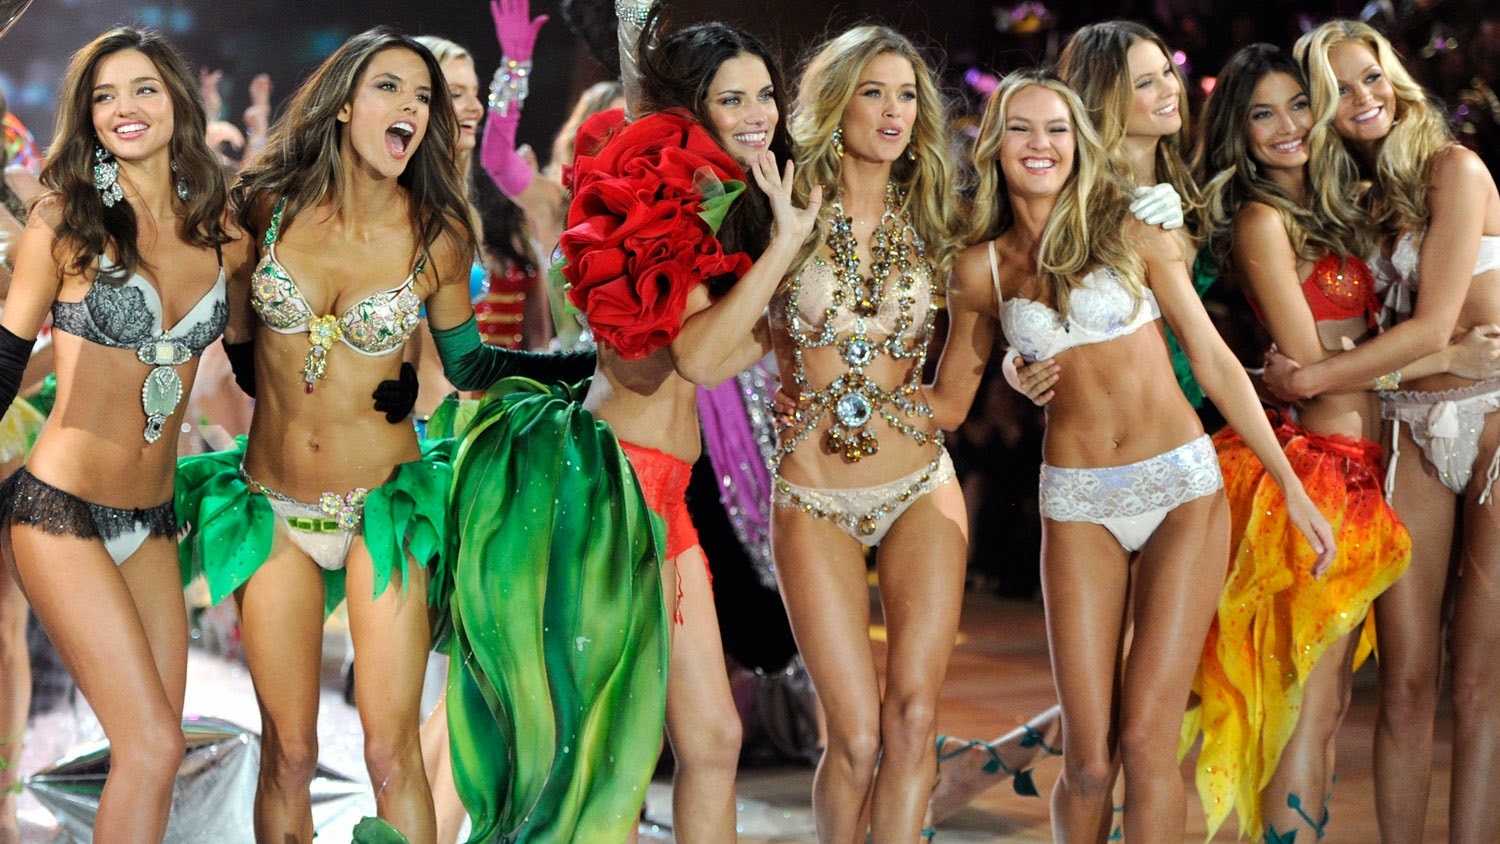 Here are the best articles about the company Victoria's Secret seasoned with http://victoriasecretcom.blogspot.com/.